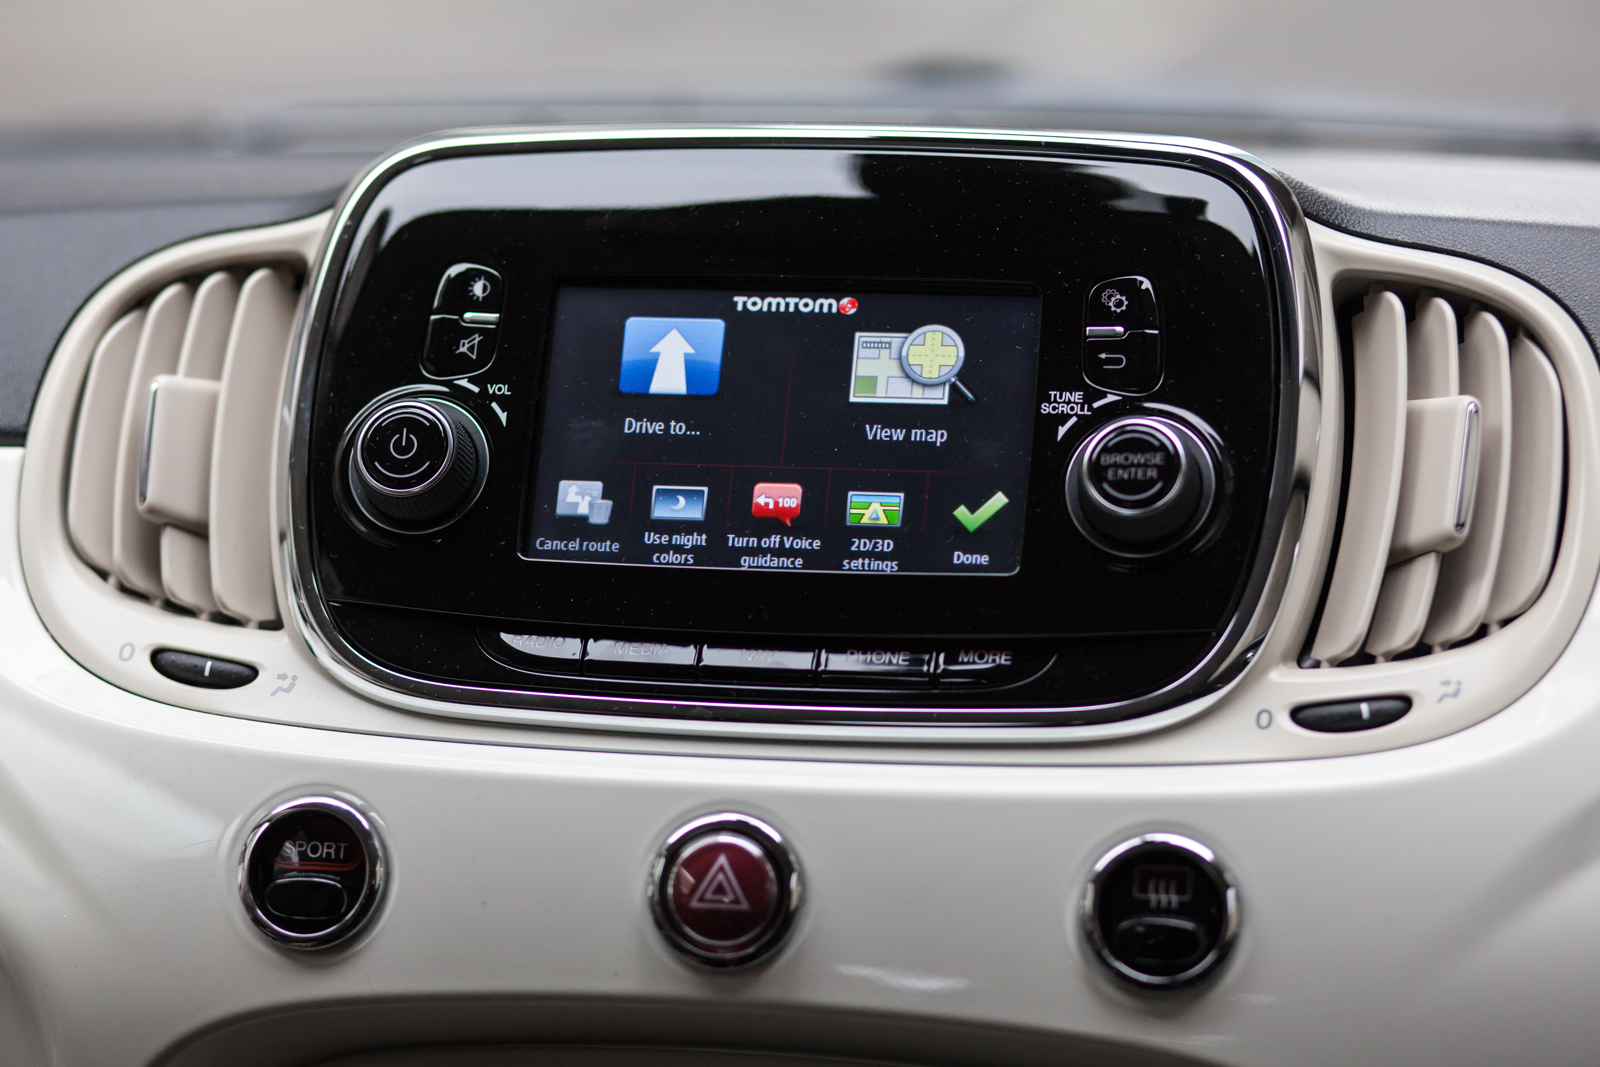 cars to do connect reviews my i phone fiat how com research consumer